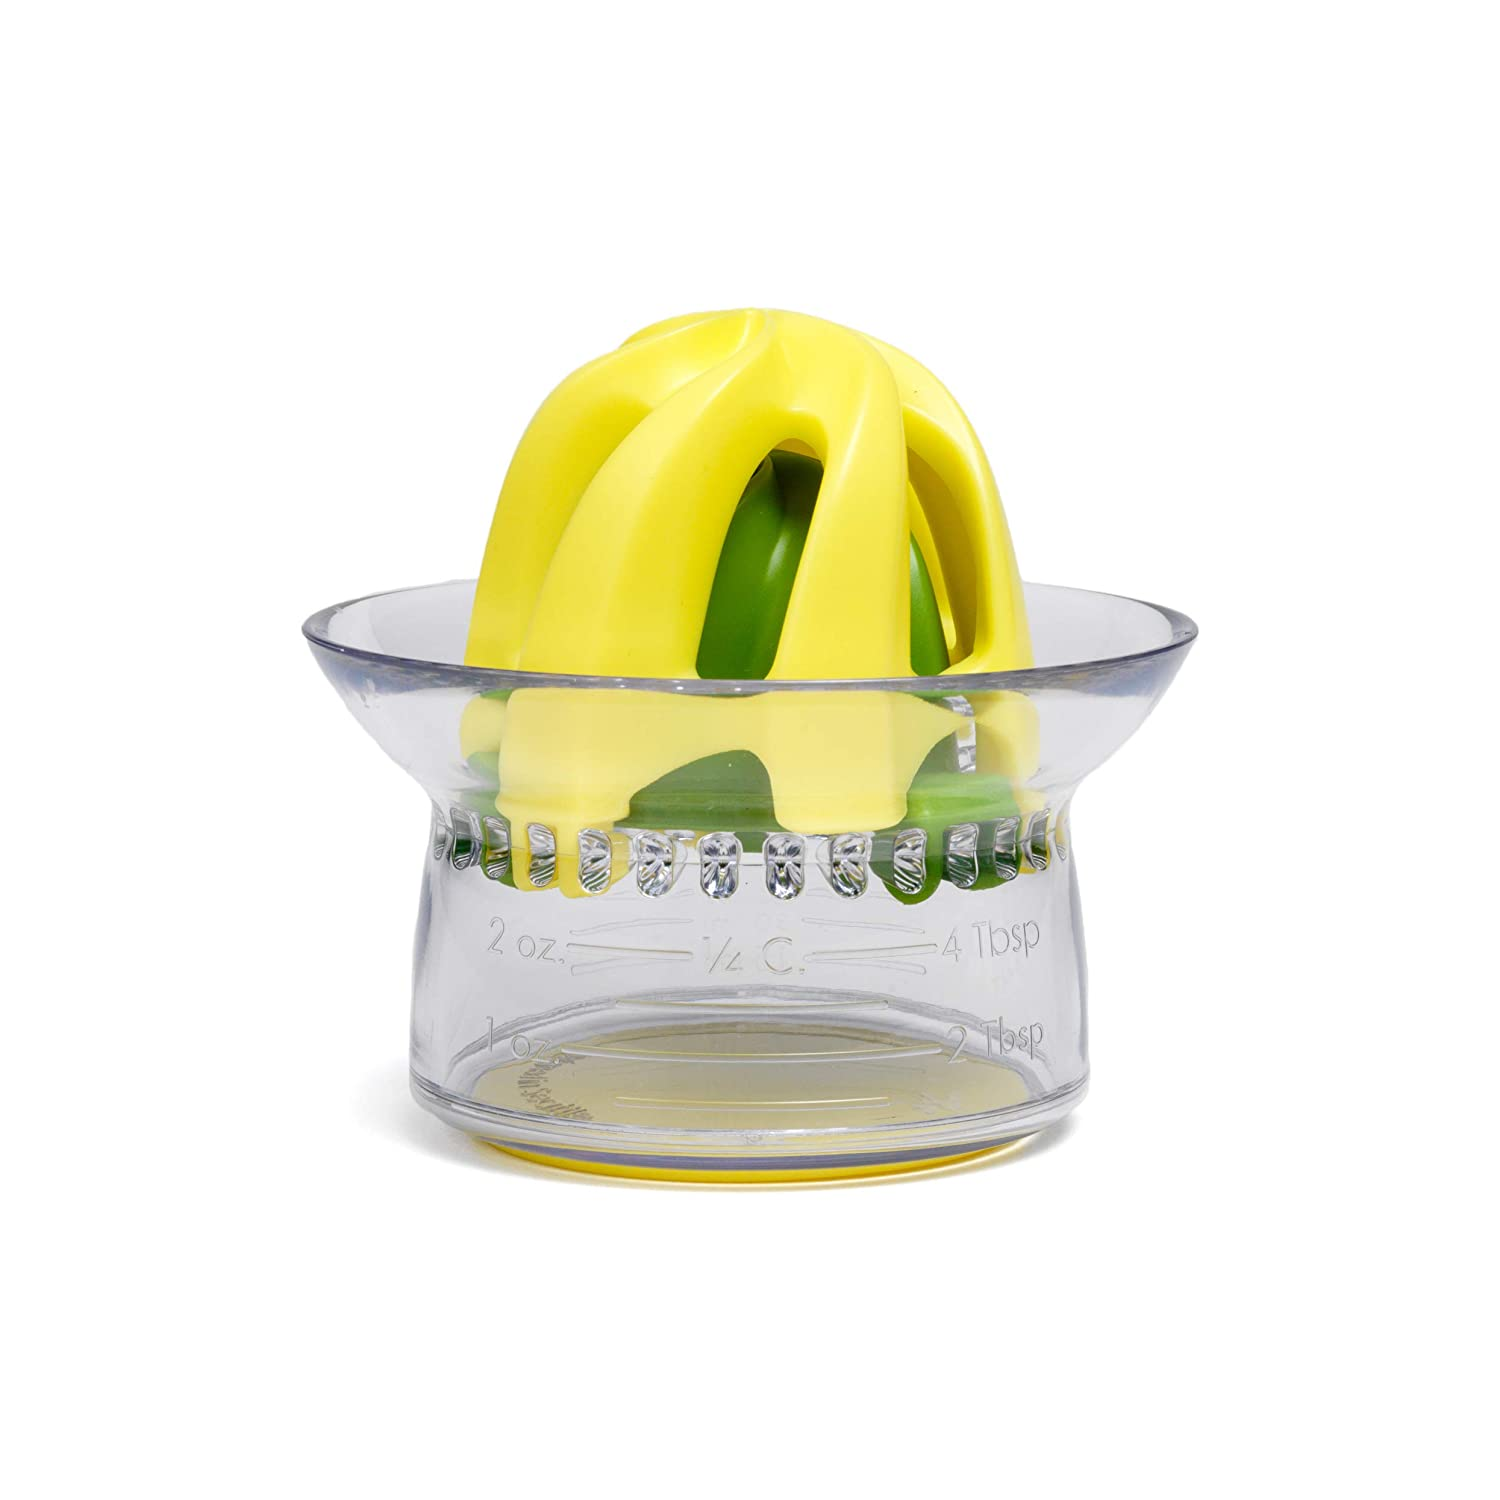 Chef'n 2-in-1 Juicester Jr. Citrus Juicer